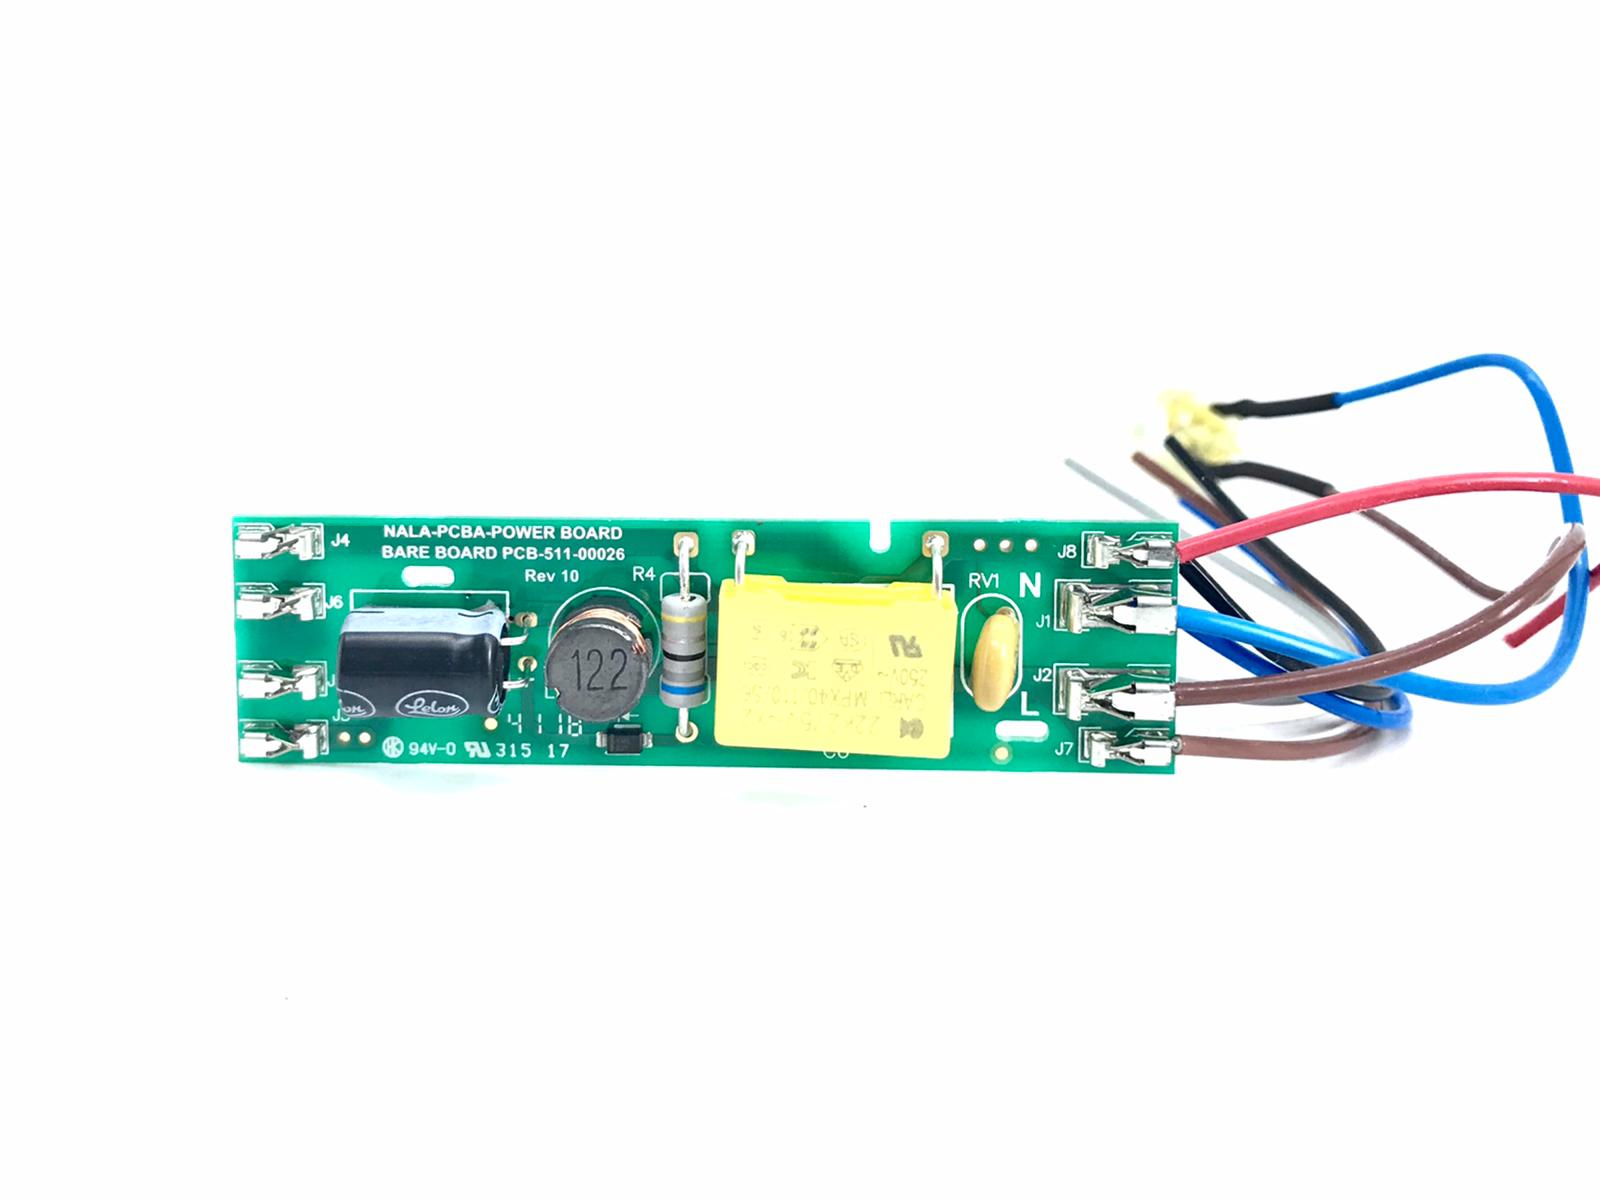 Power Board PCB-511-00026 GHD Styler S7N261